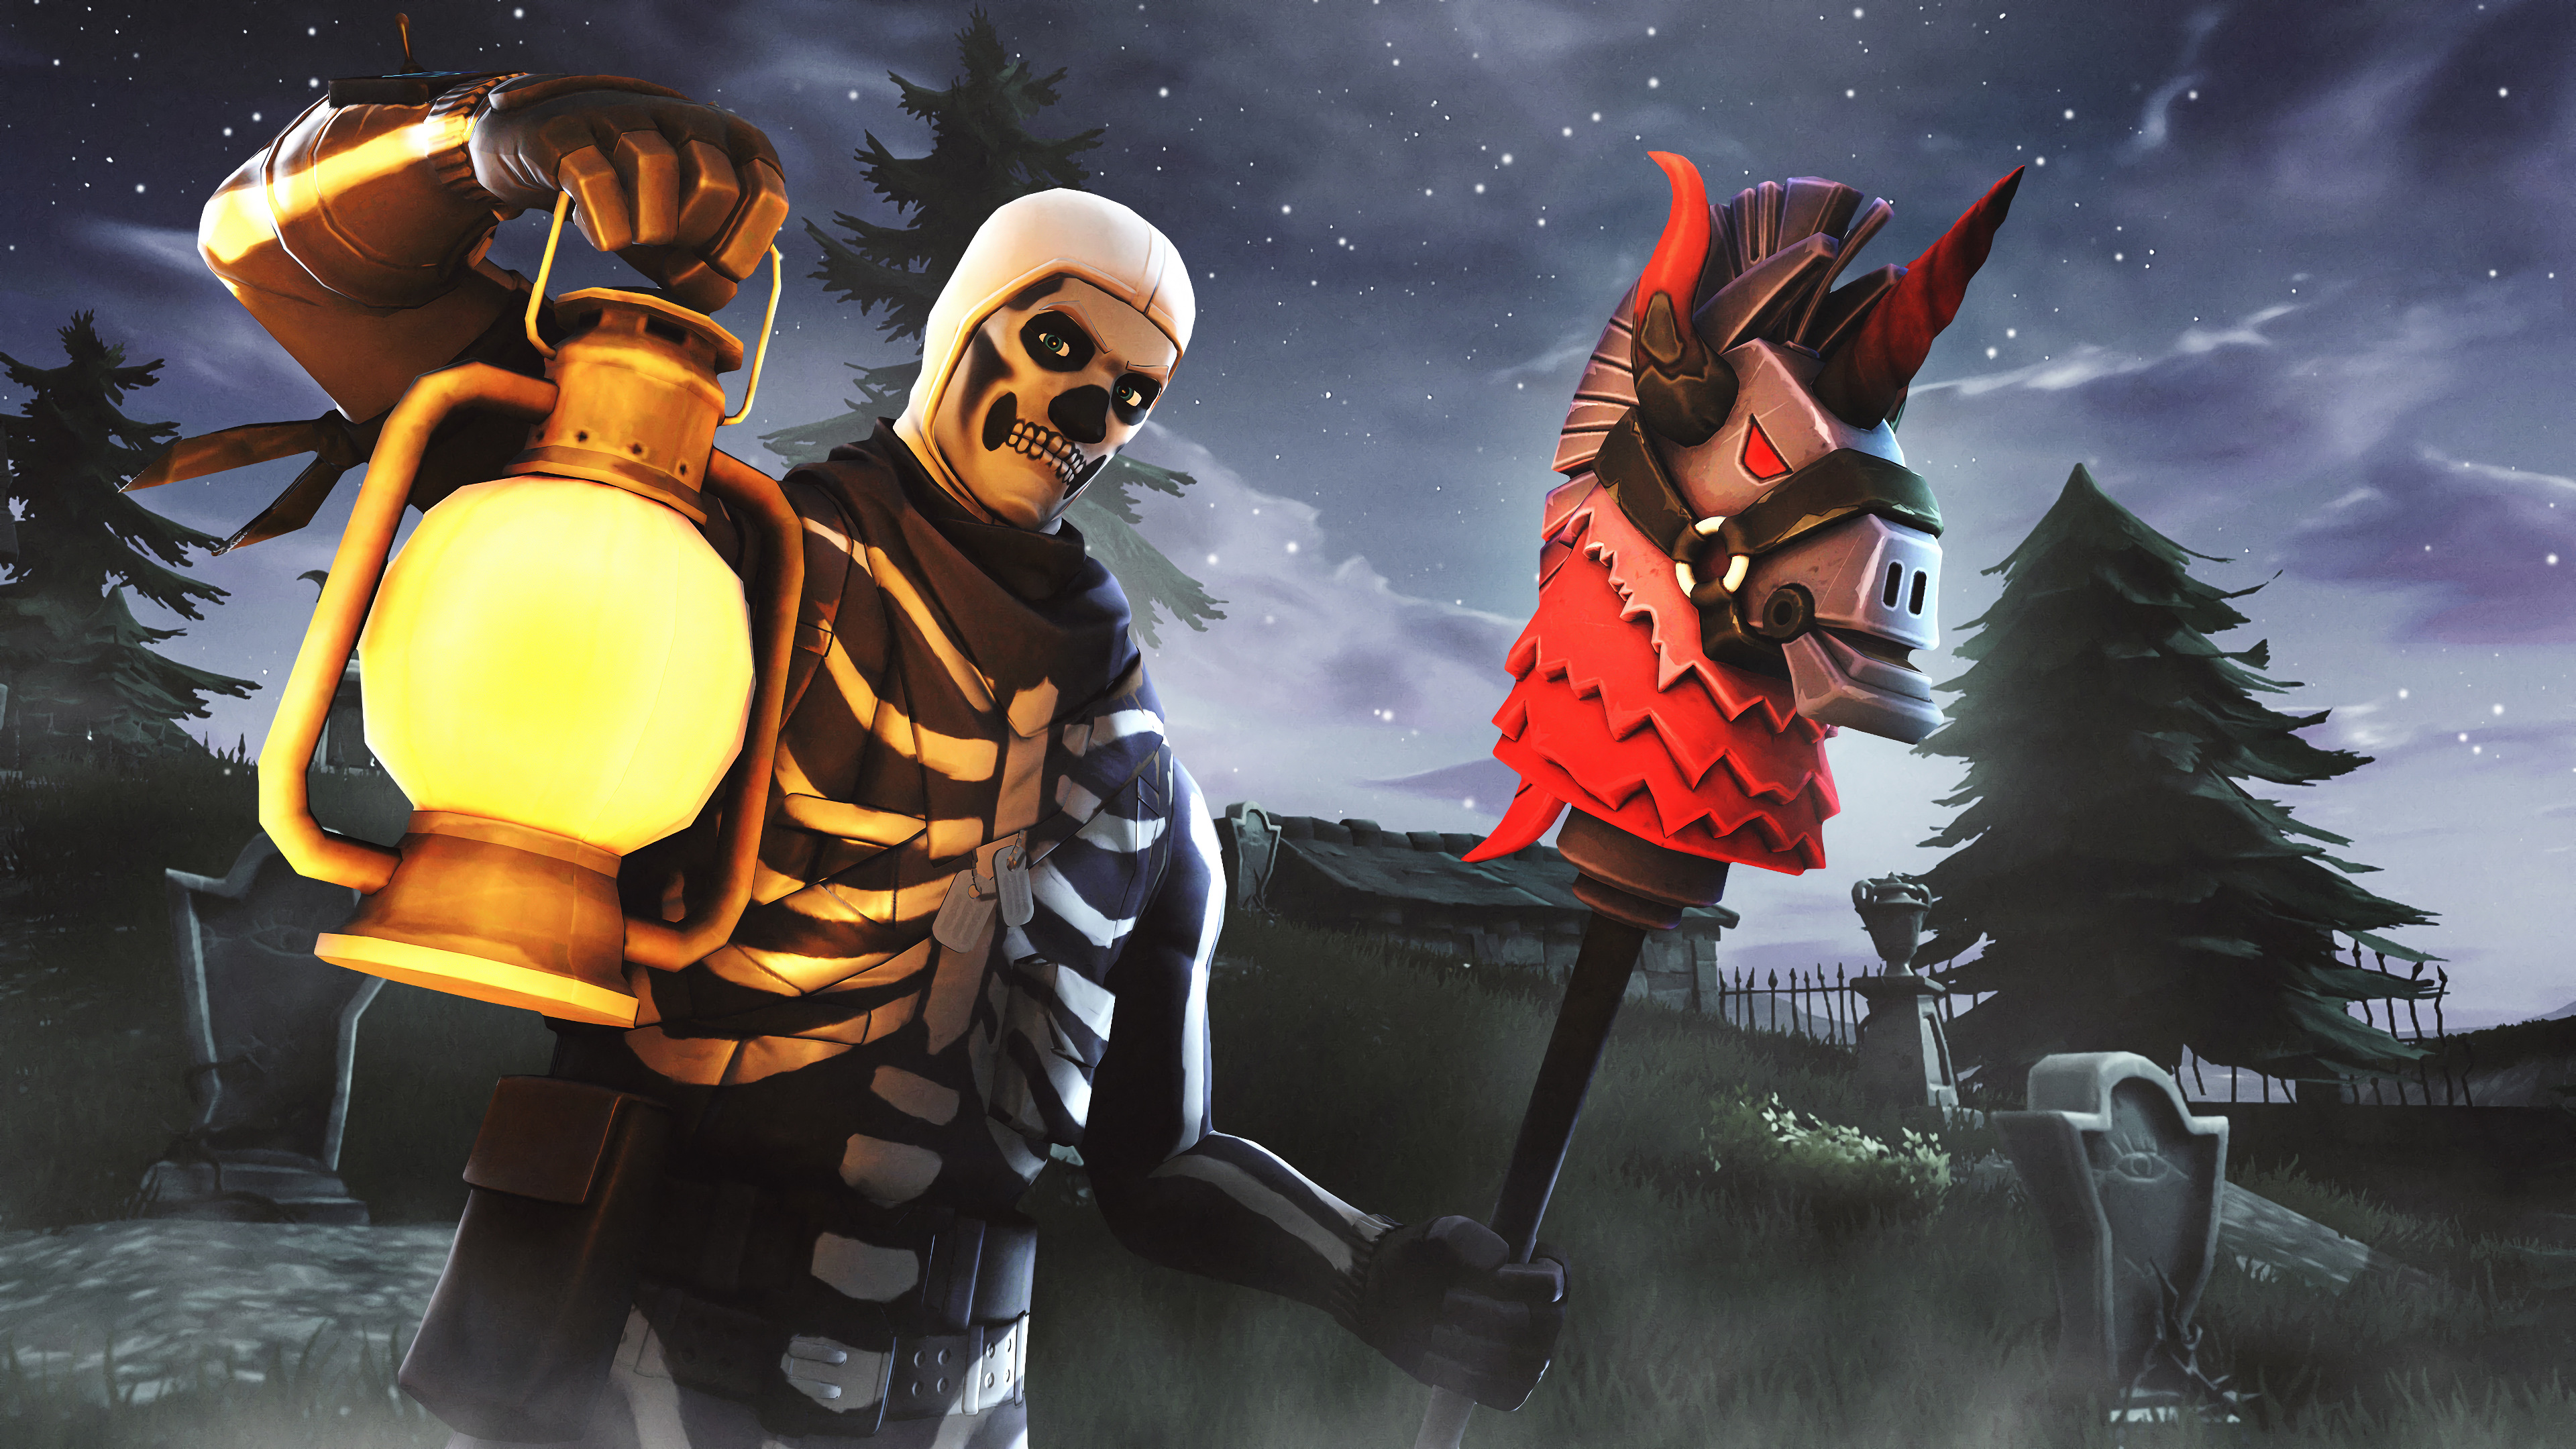 Skull trooper fortnite season 6 4k hd games 4k - 4k fortnite wallpaper ...